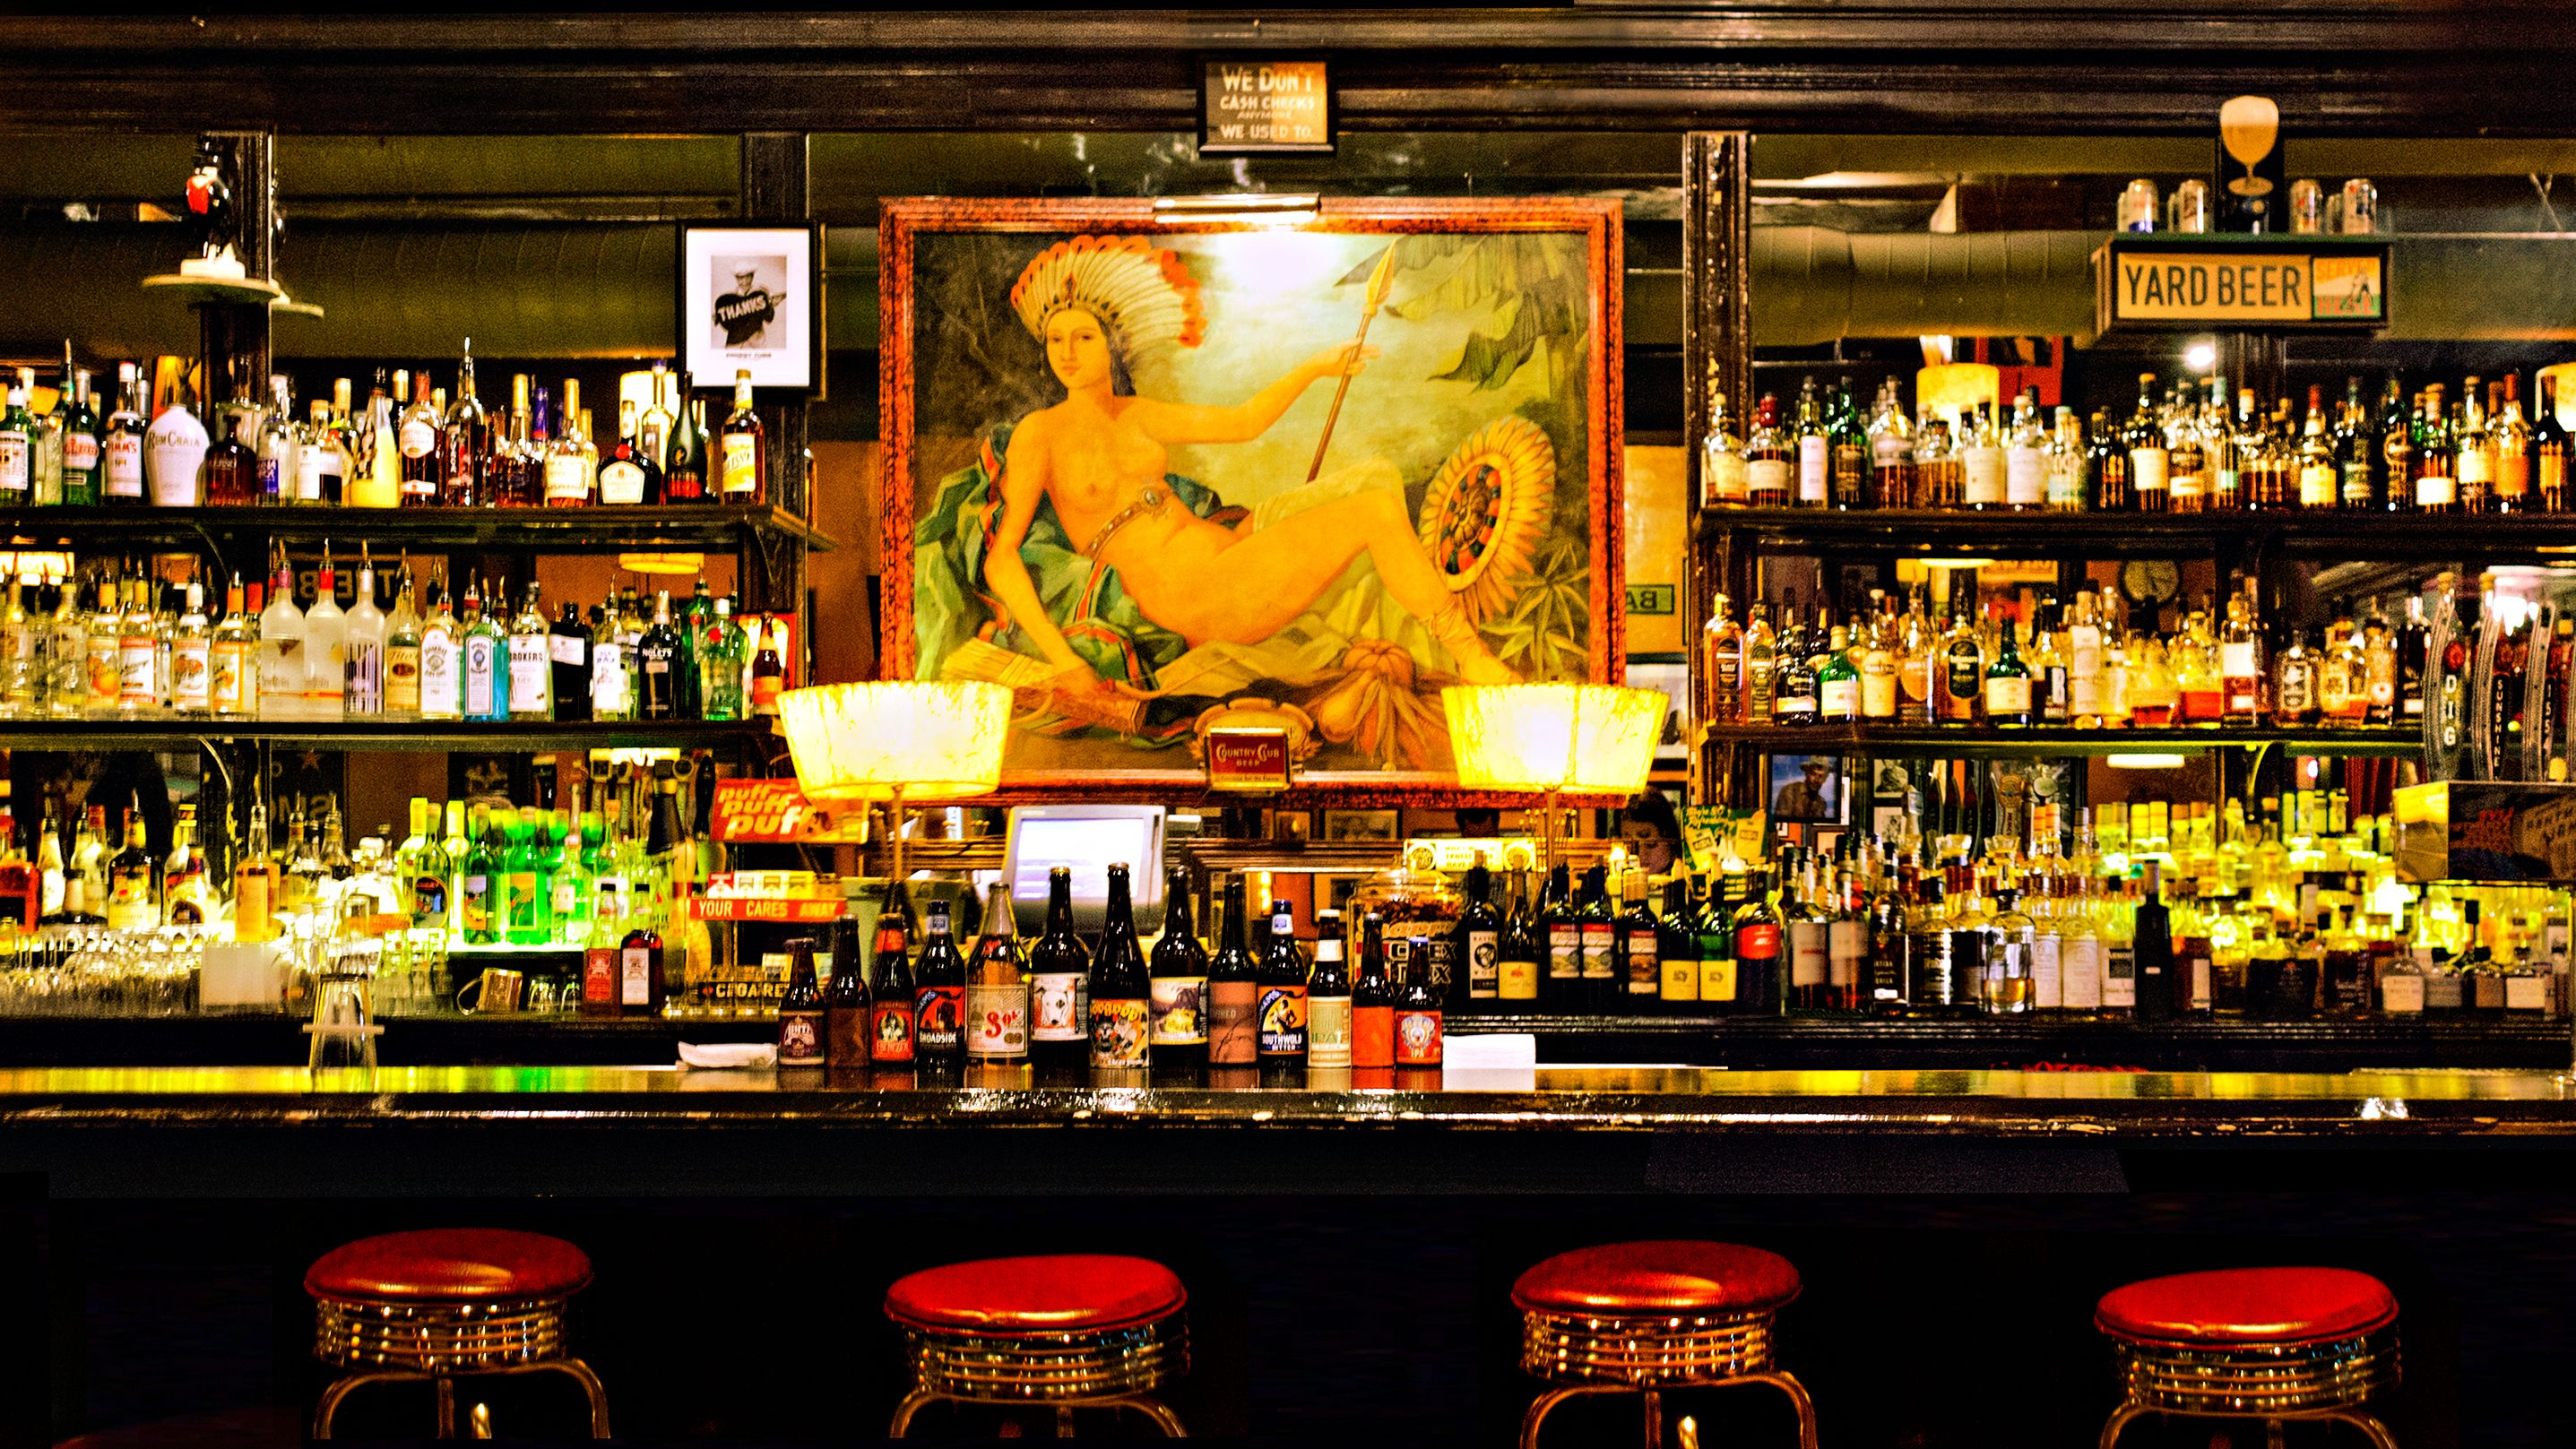 Charming 18 Best Bars In America 2016   Where To Drink In The U.S.A.